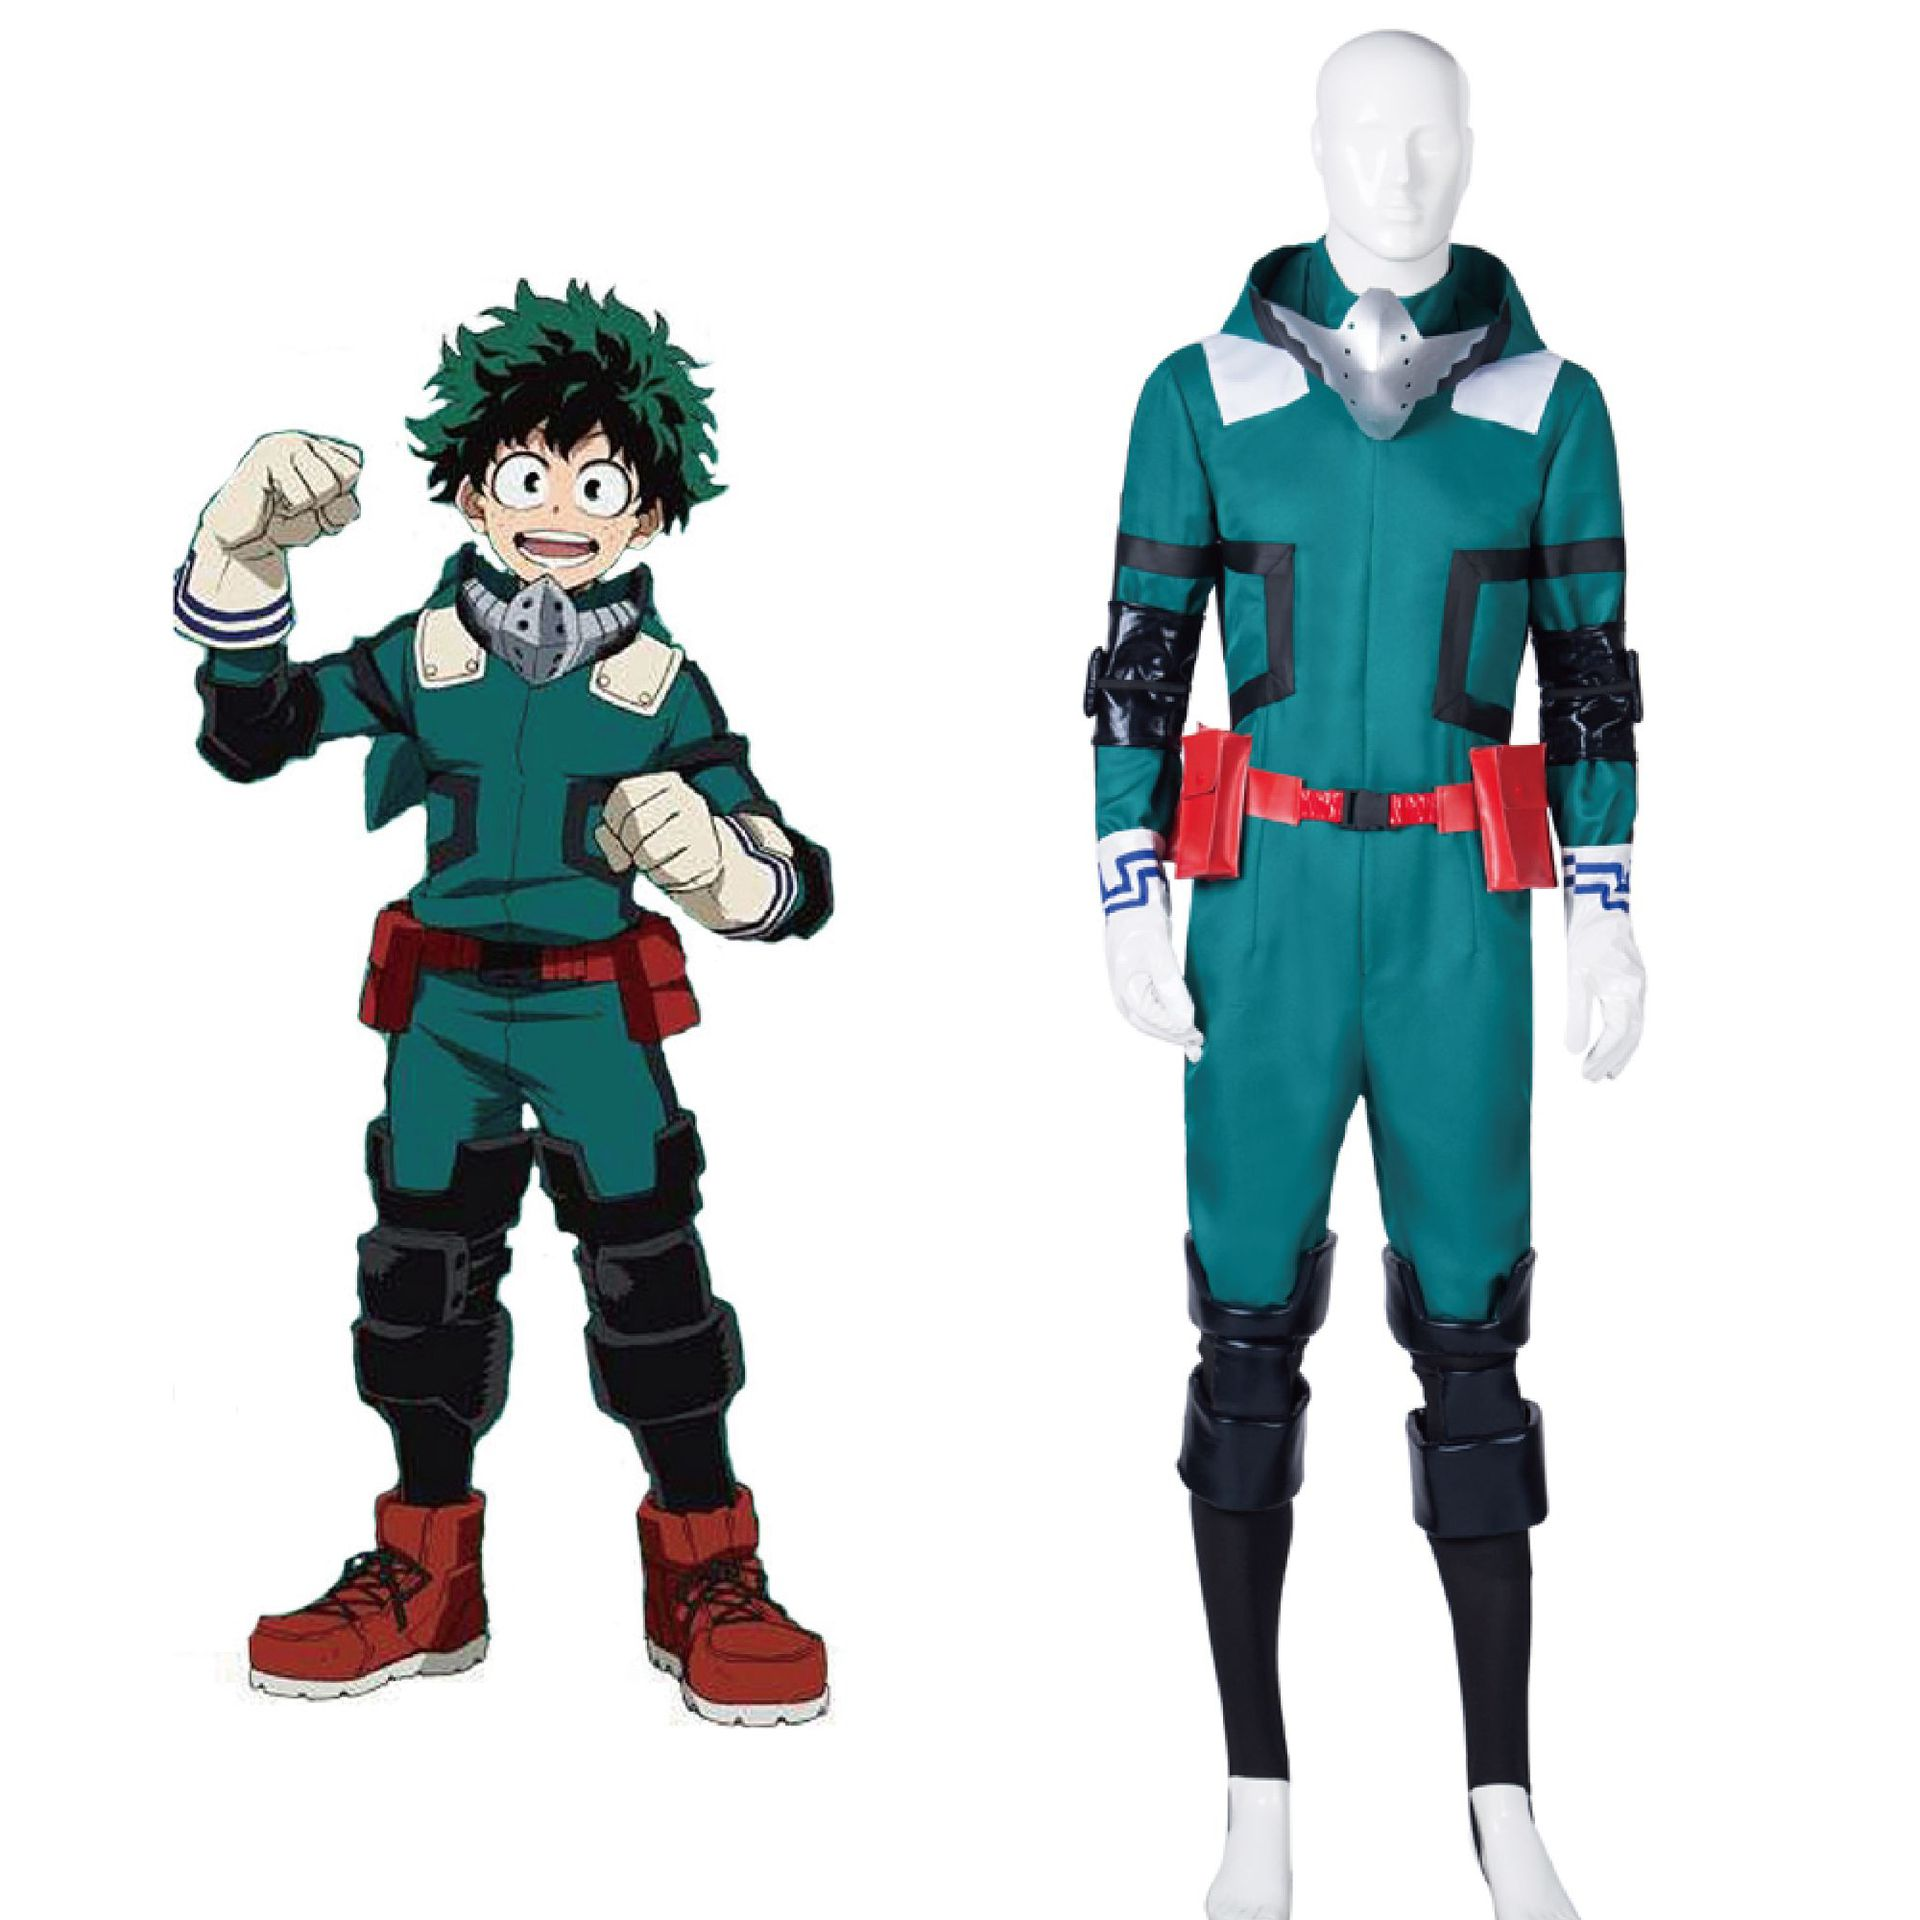 Anime My Hero Academia Boku No Hero Academia Midoriya Izuku Deku Cosplay Costume Battle Suit Men Jumpsuit Carnival Full Set